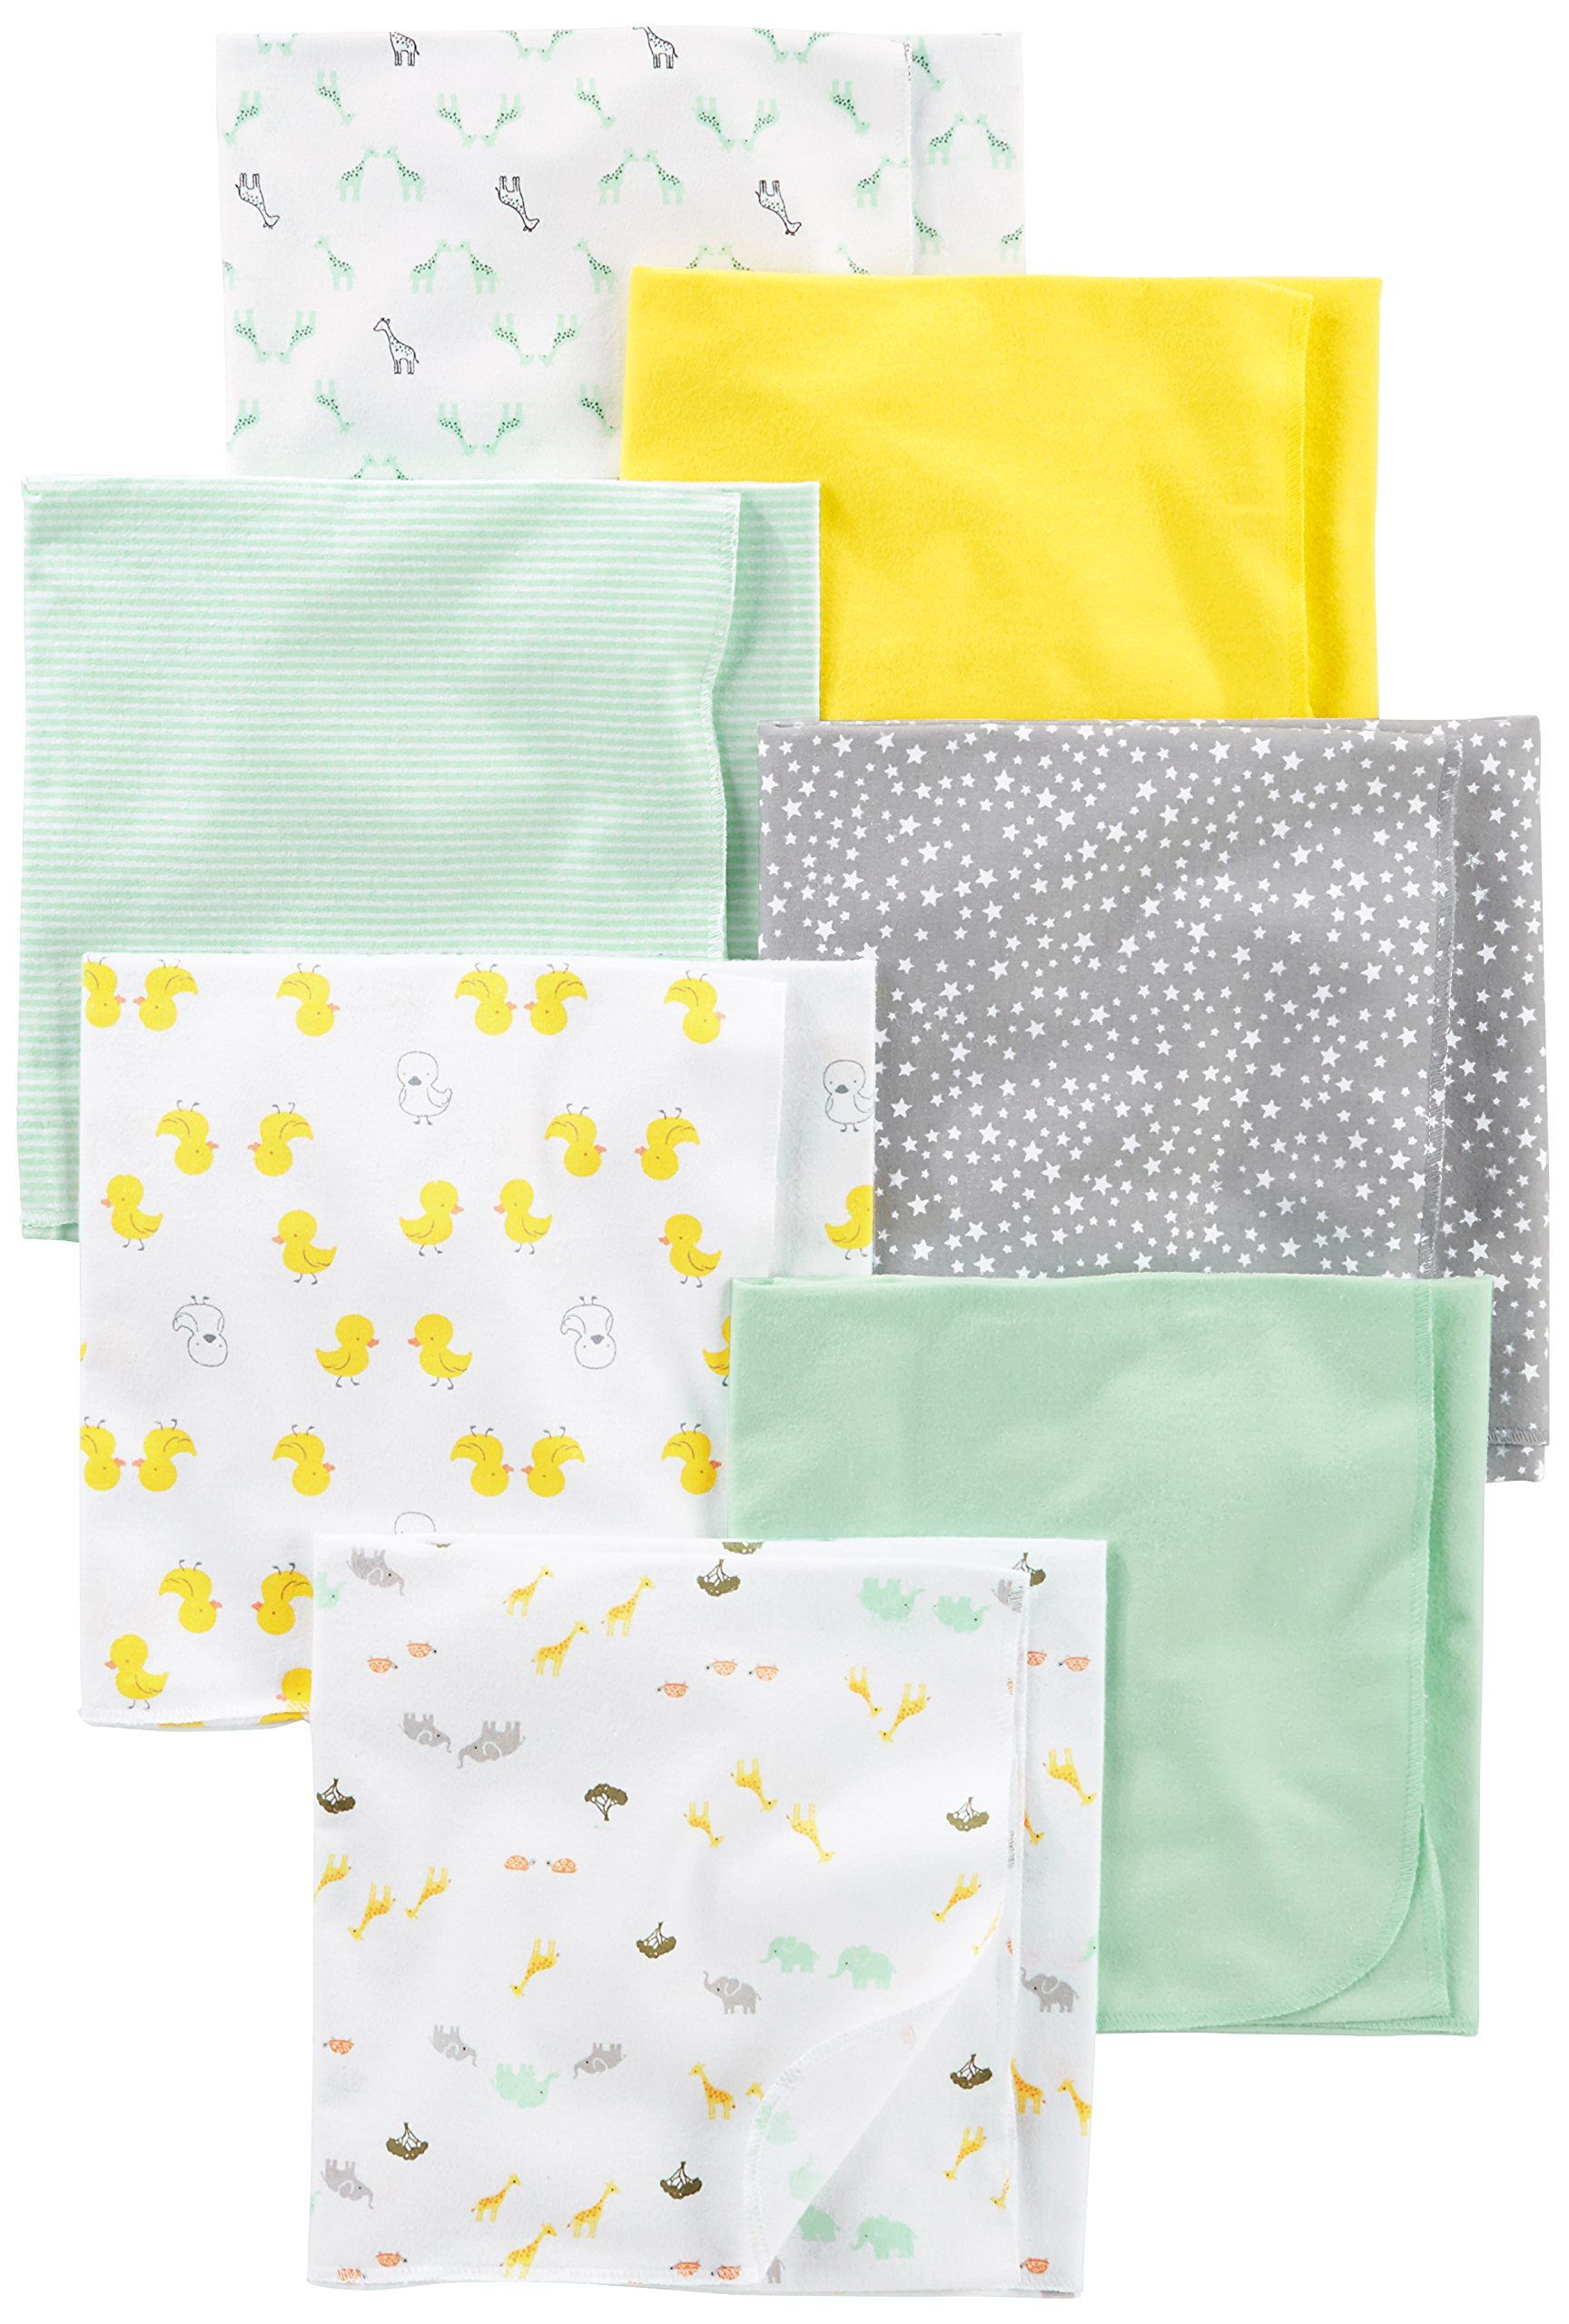 Simple Joys by Carter's Baby Unisex 7-Pack Flannel Receiving Blankets, Grey/White/Mint, One Size by Simple Joys by Carter's